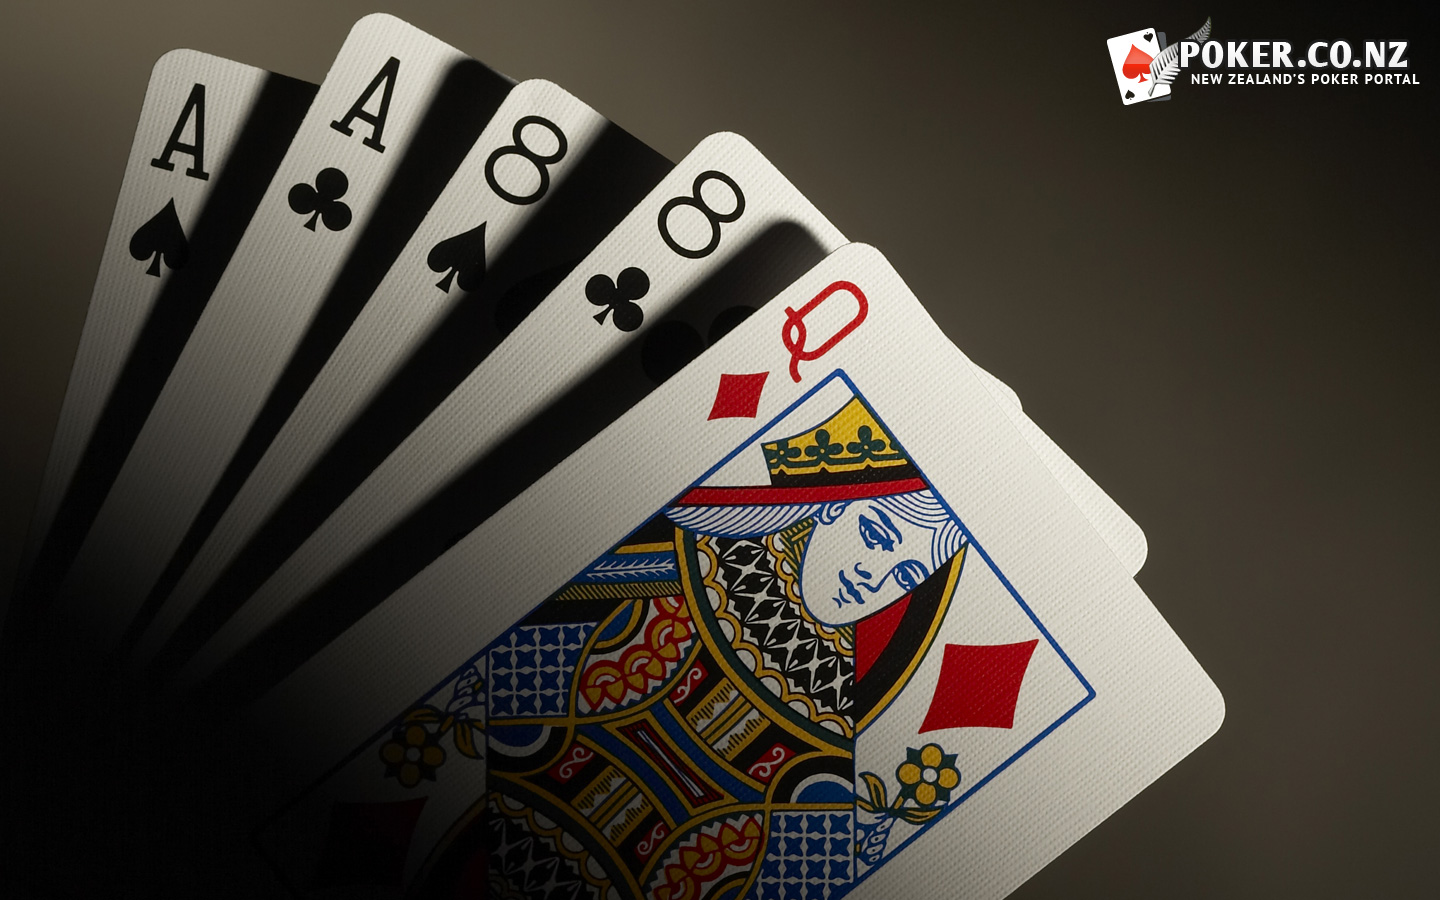 Play the betting game at break time and earn some addiction profit